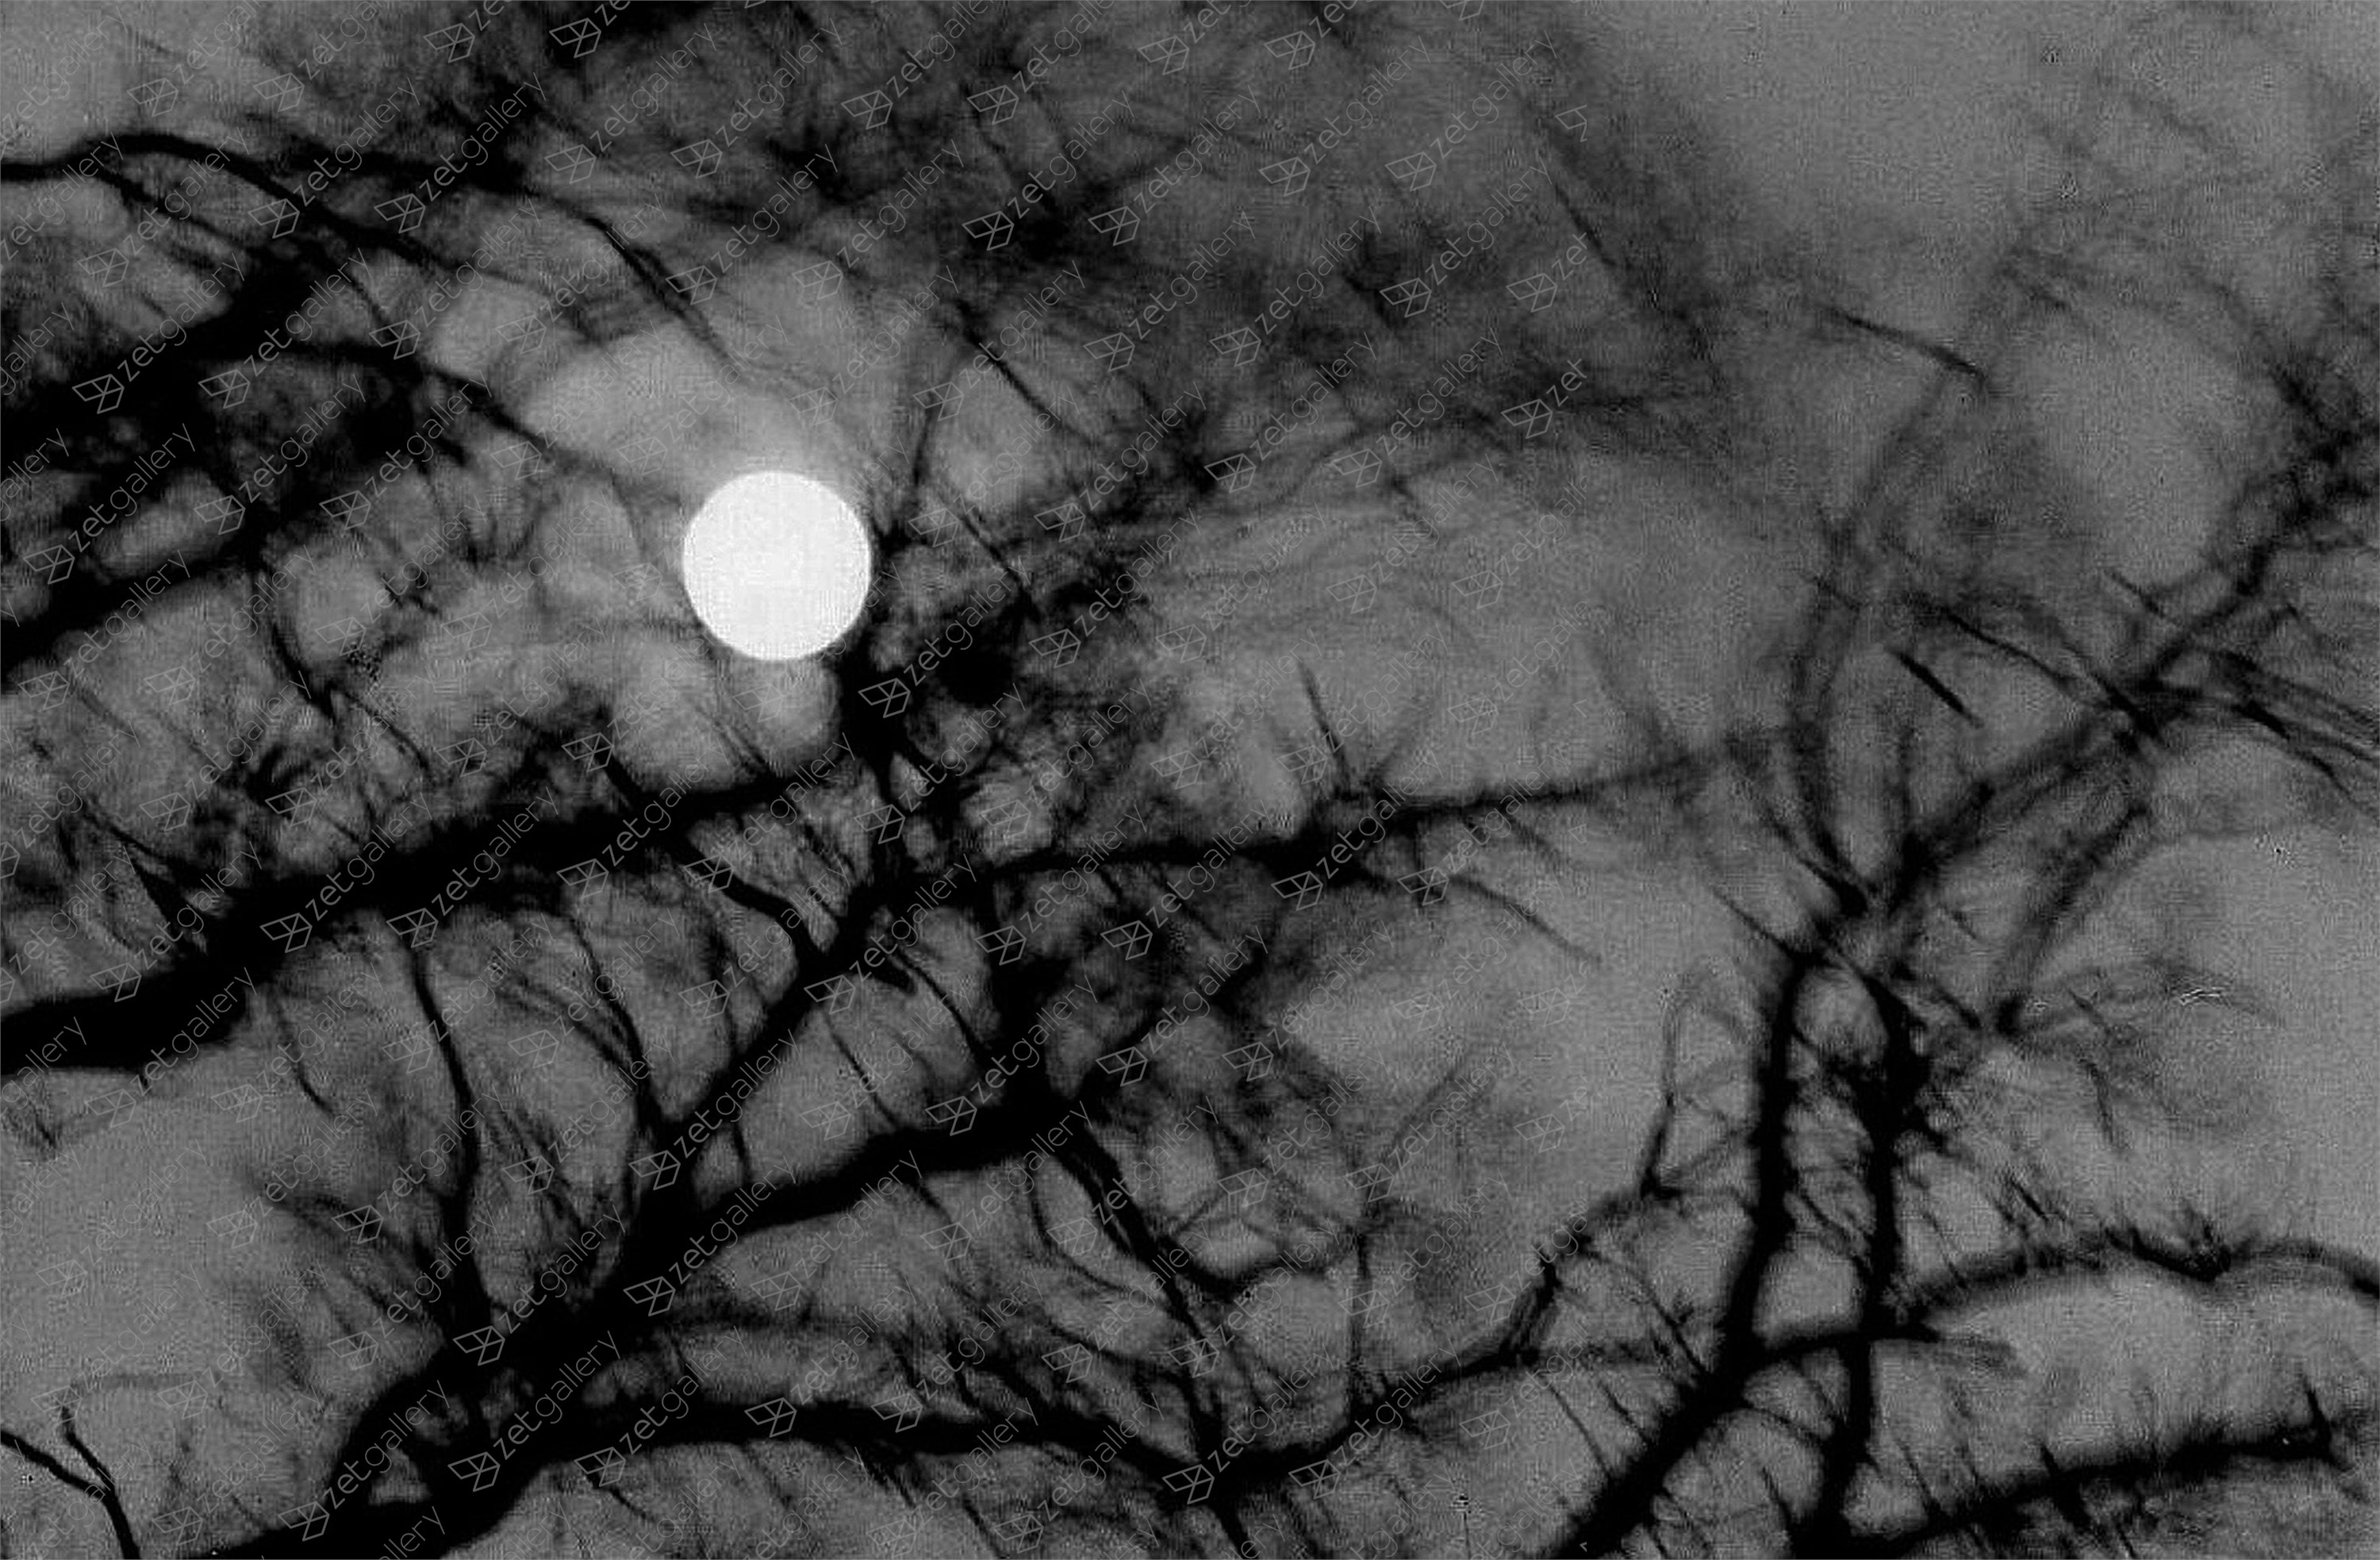 Full-Moon-Night, Fotografía Analógica Blanco y Negro original por Heinz Baade